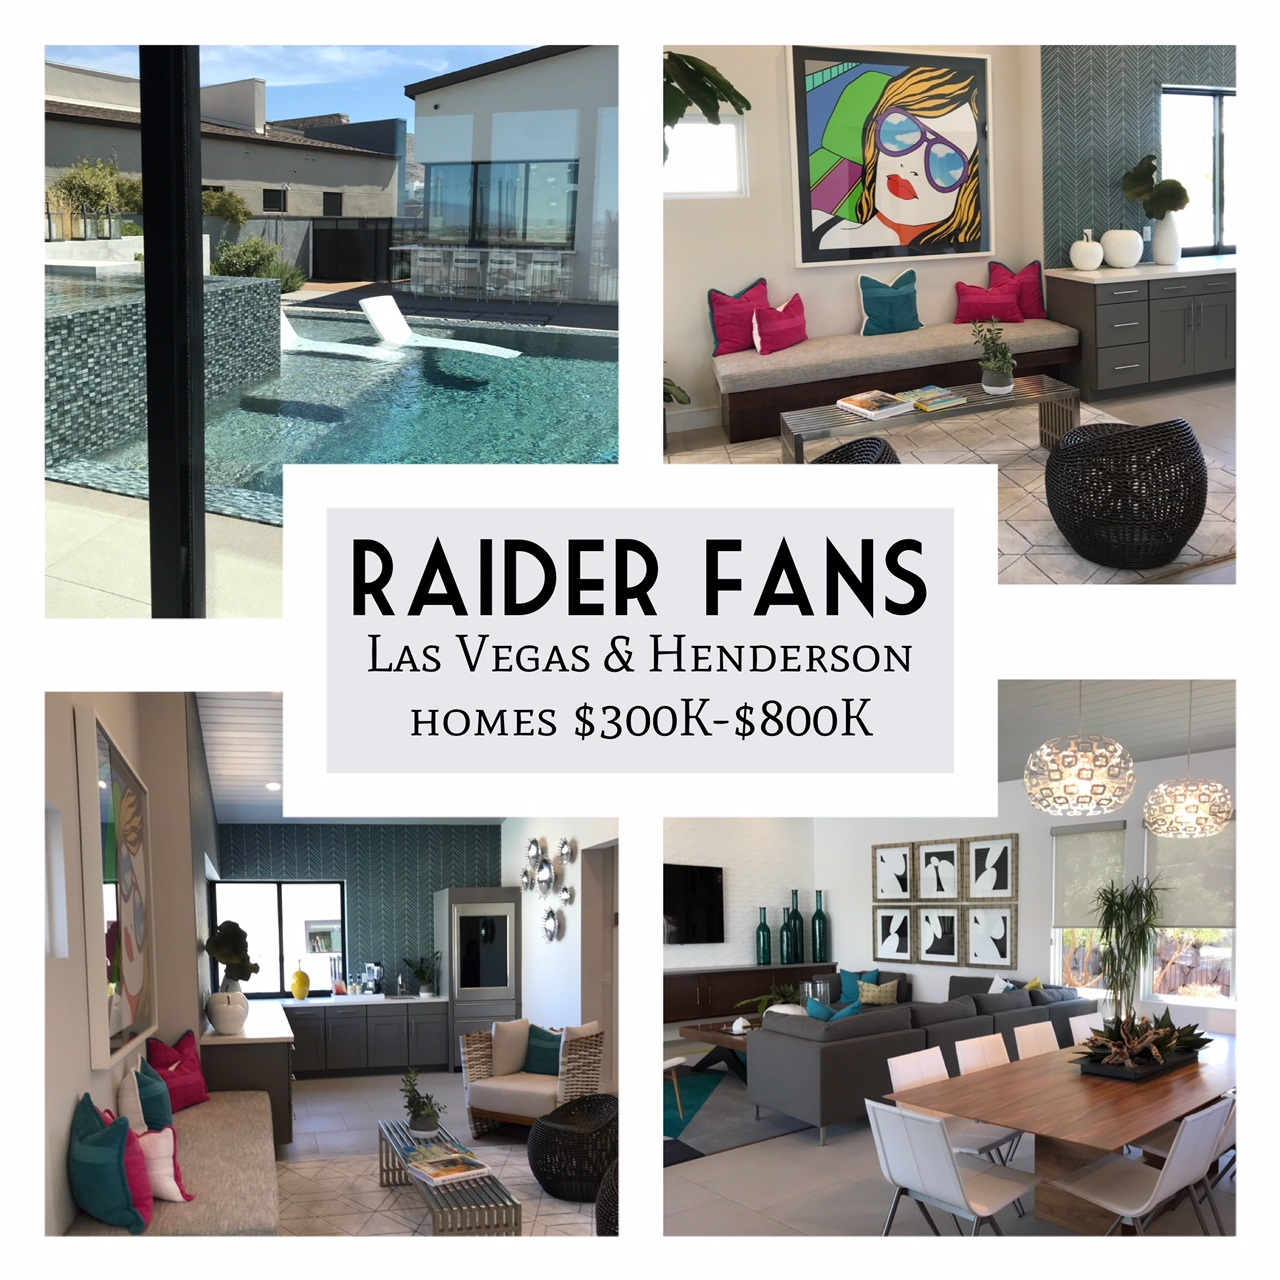 Raider Fans are you thinking of investing in a second home in Las Vegas?